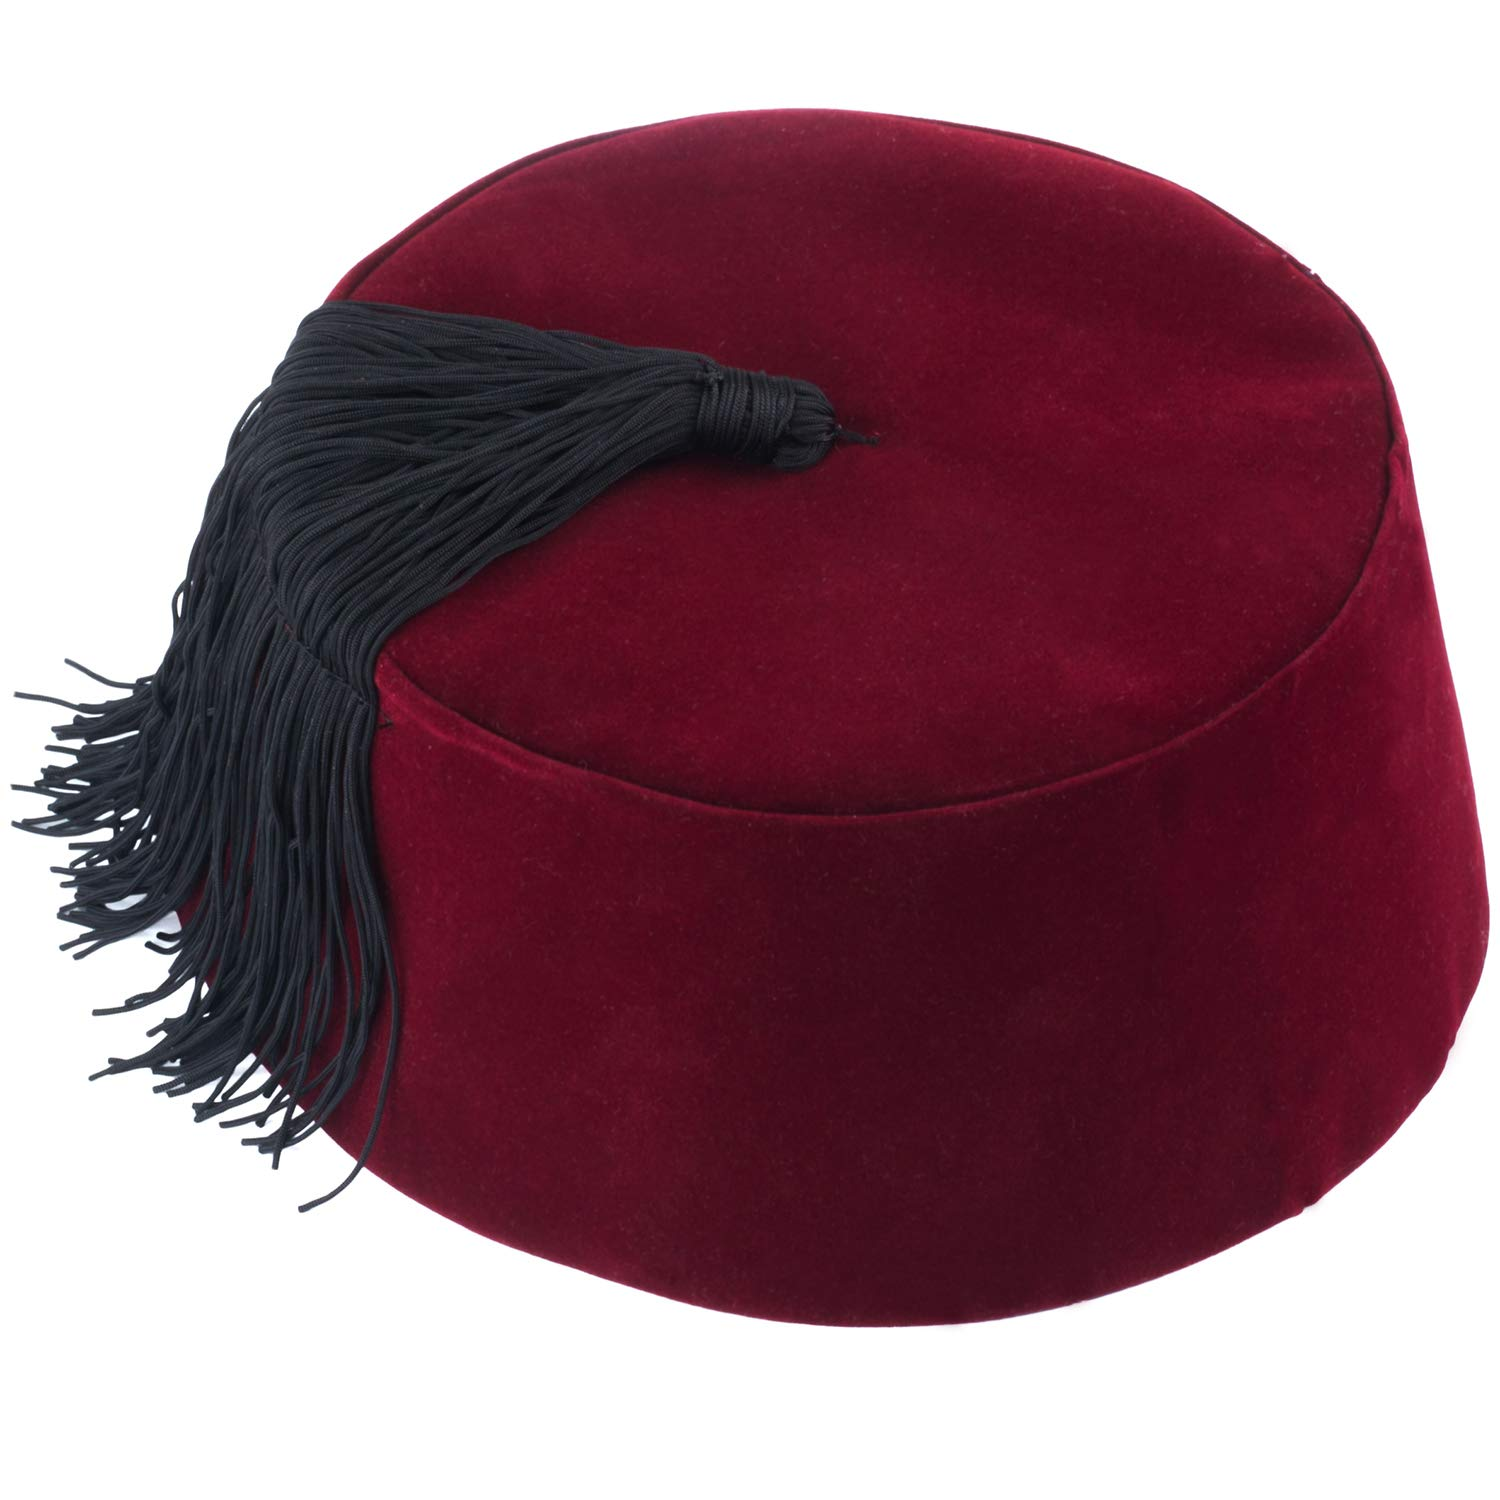 Amazon com: Funny Party Hats Fez Hat - Red Fez Hat with Gold